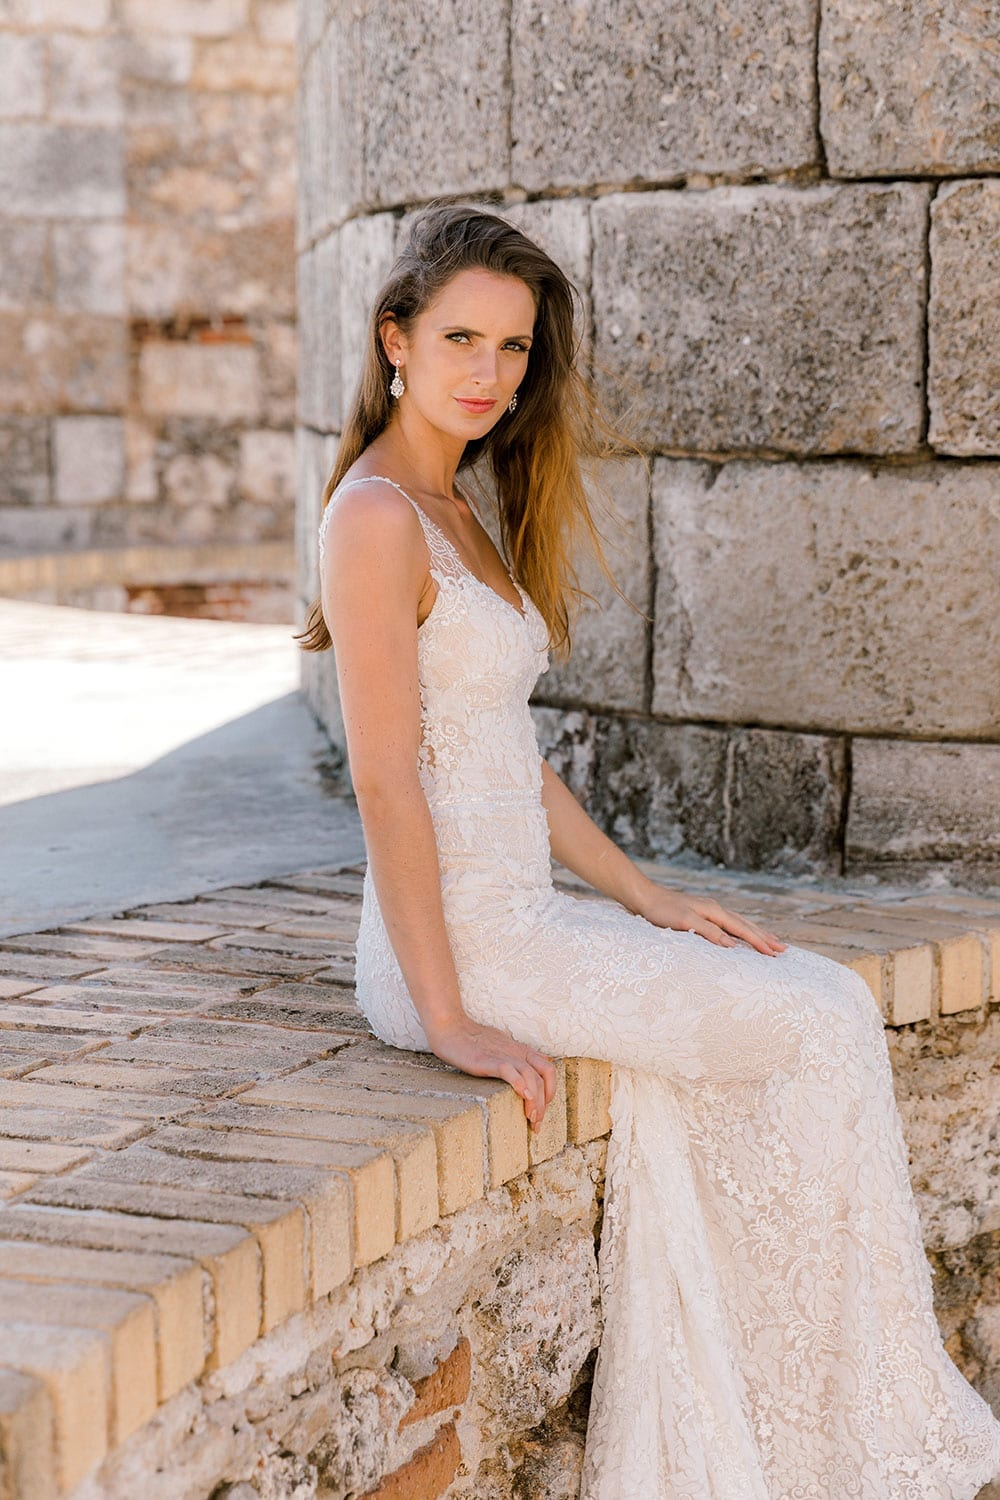 Model wearing Vinka Design Miriam Wedding Dress, a Beaded Lace Wedding Gown sitting on old wall in Cuba